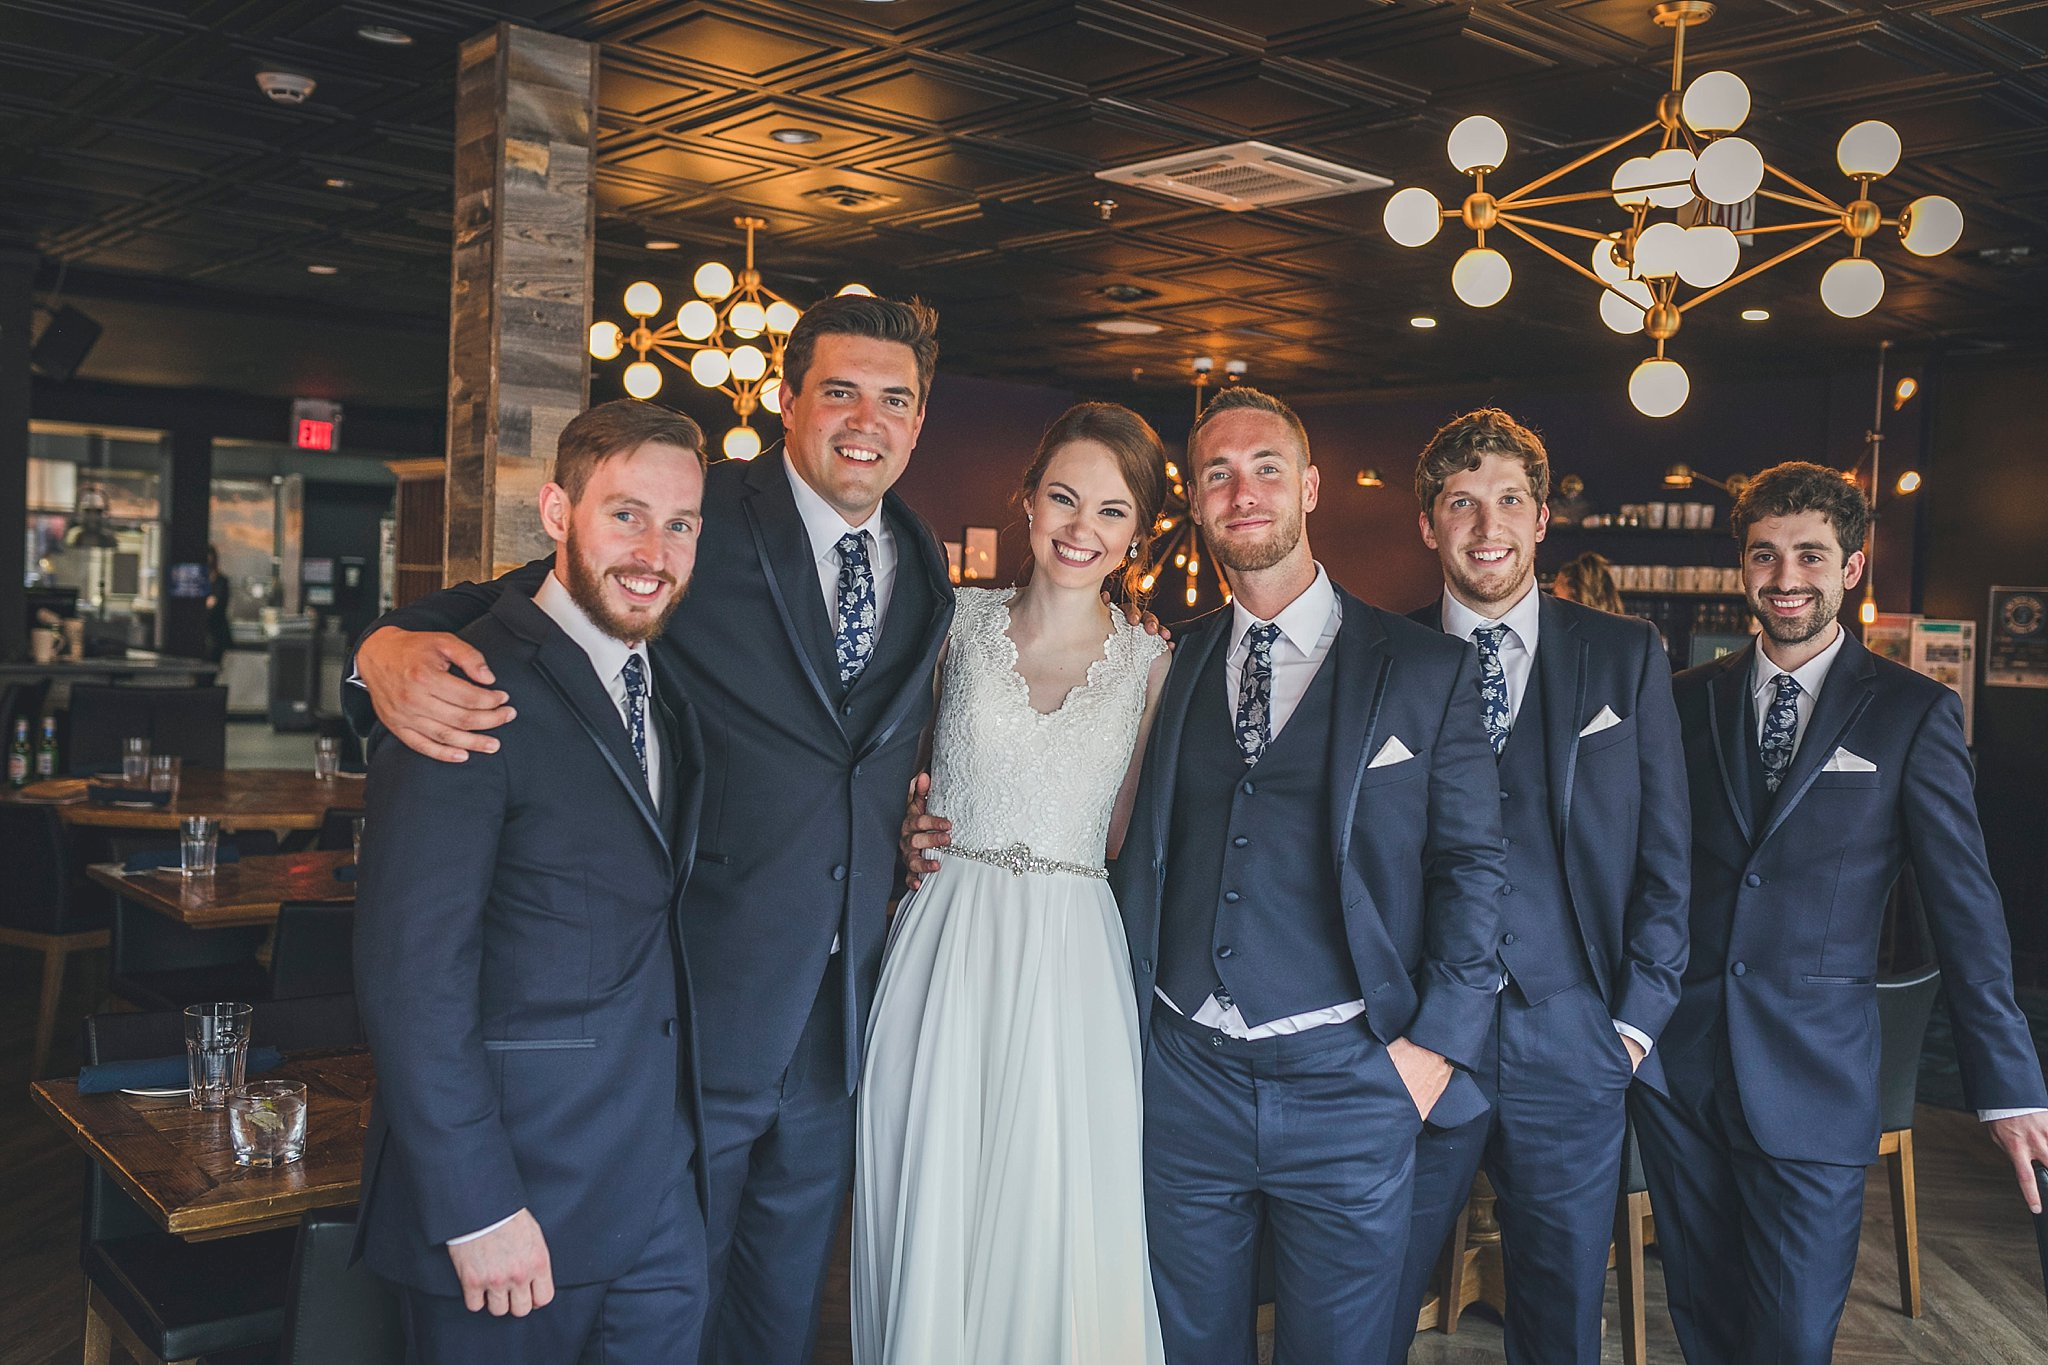 Wedding photography at the 5th Ticket in downtown St. John's, Newfoundland